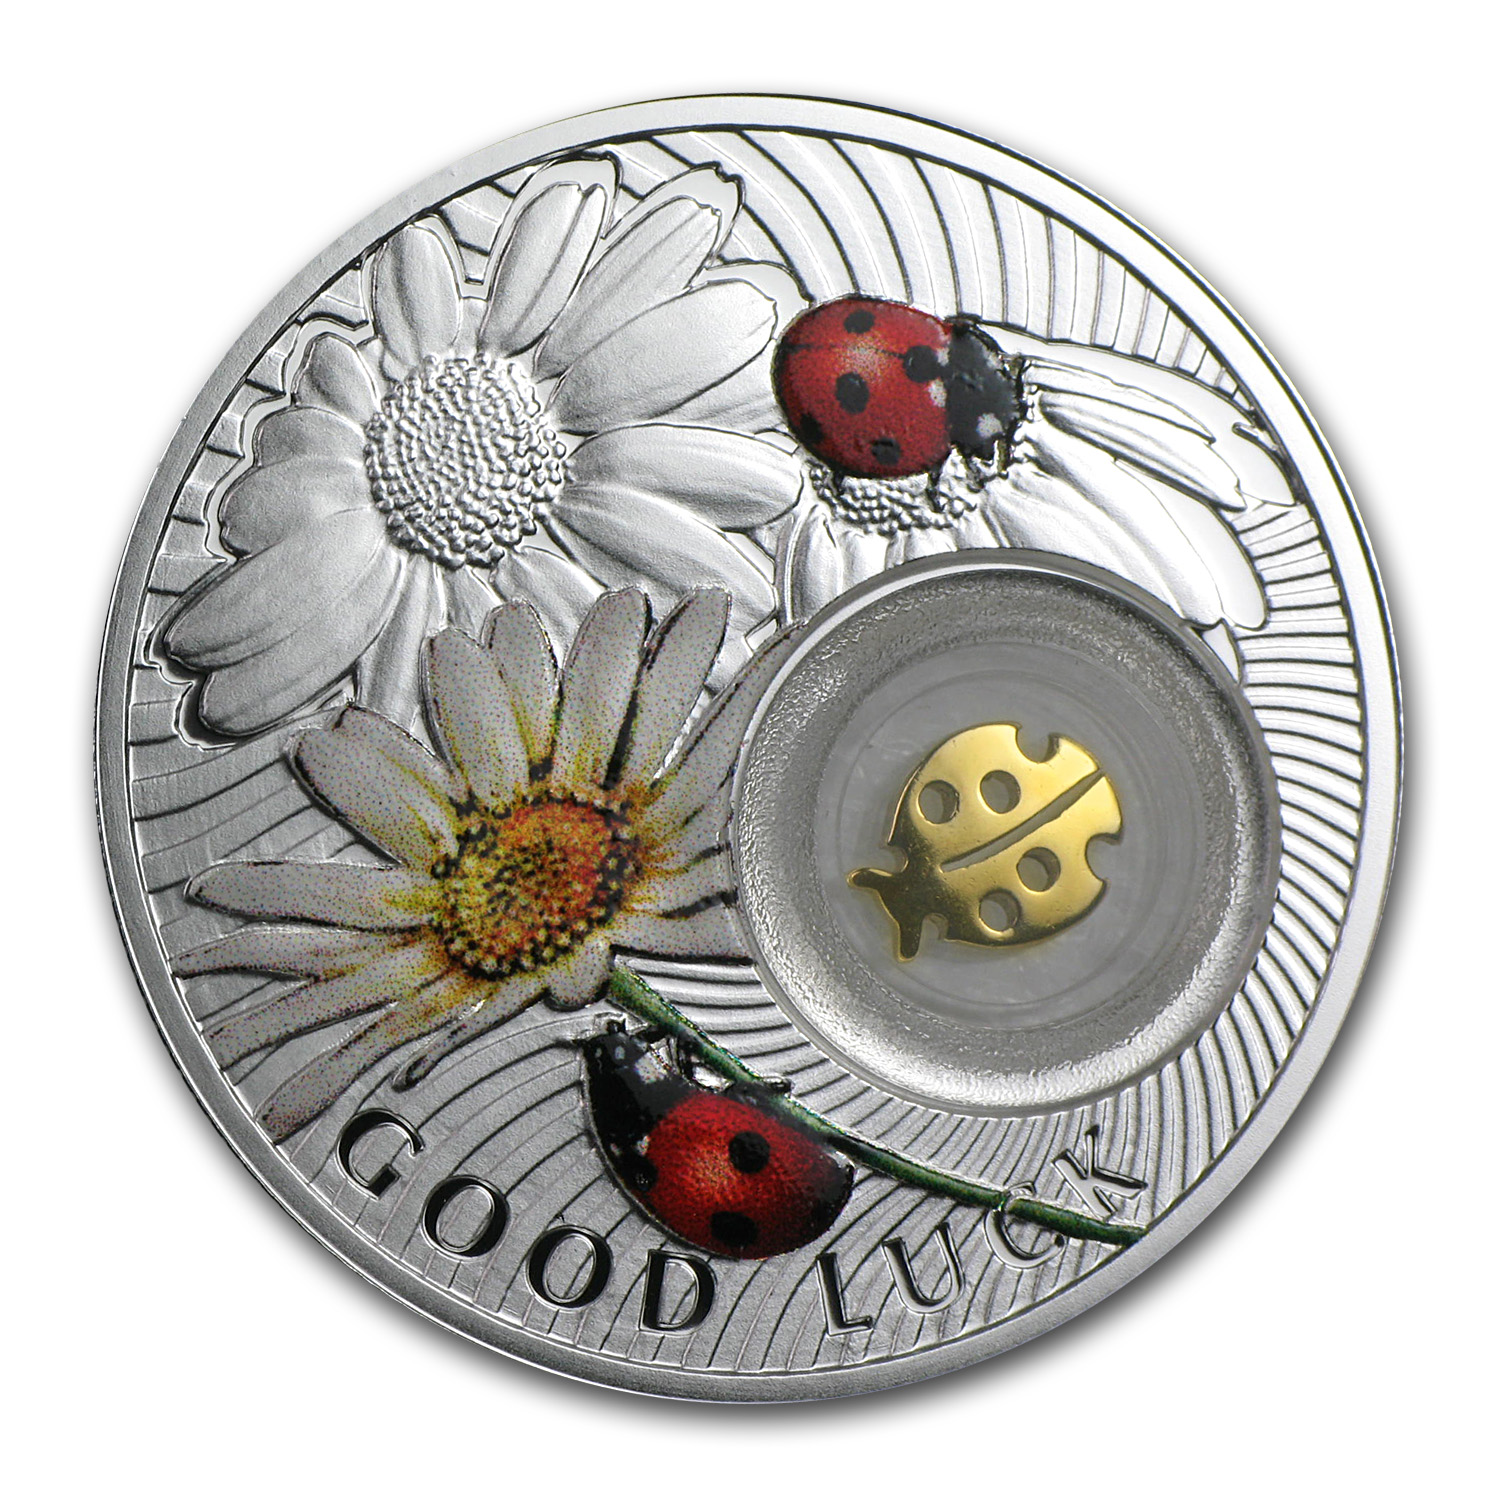 2014 Niue Proof Silver $1 Good Luck Series Ladybird (Ladybug)